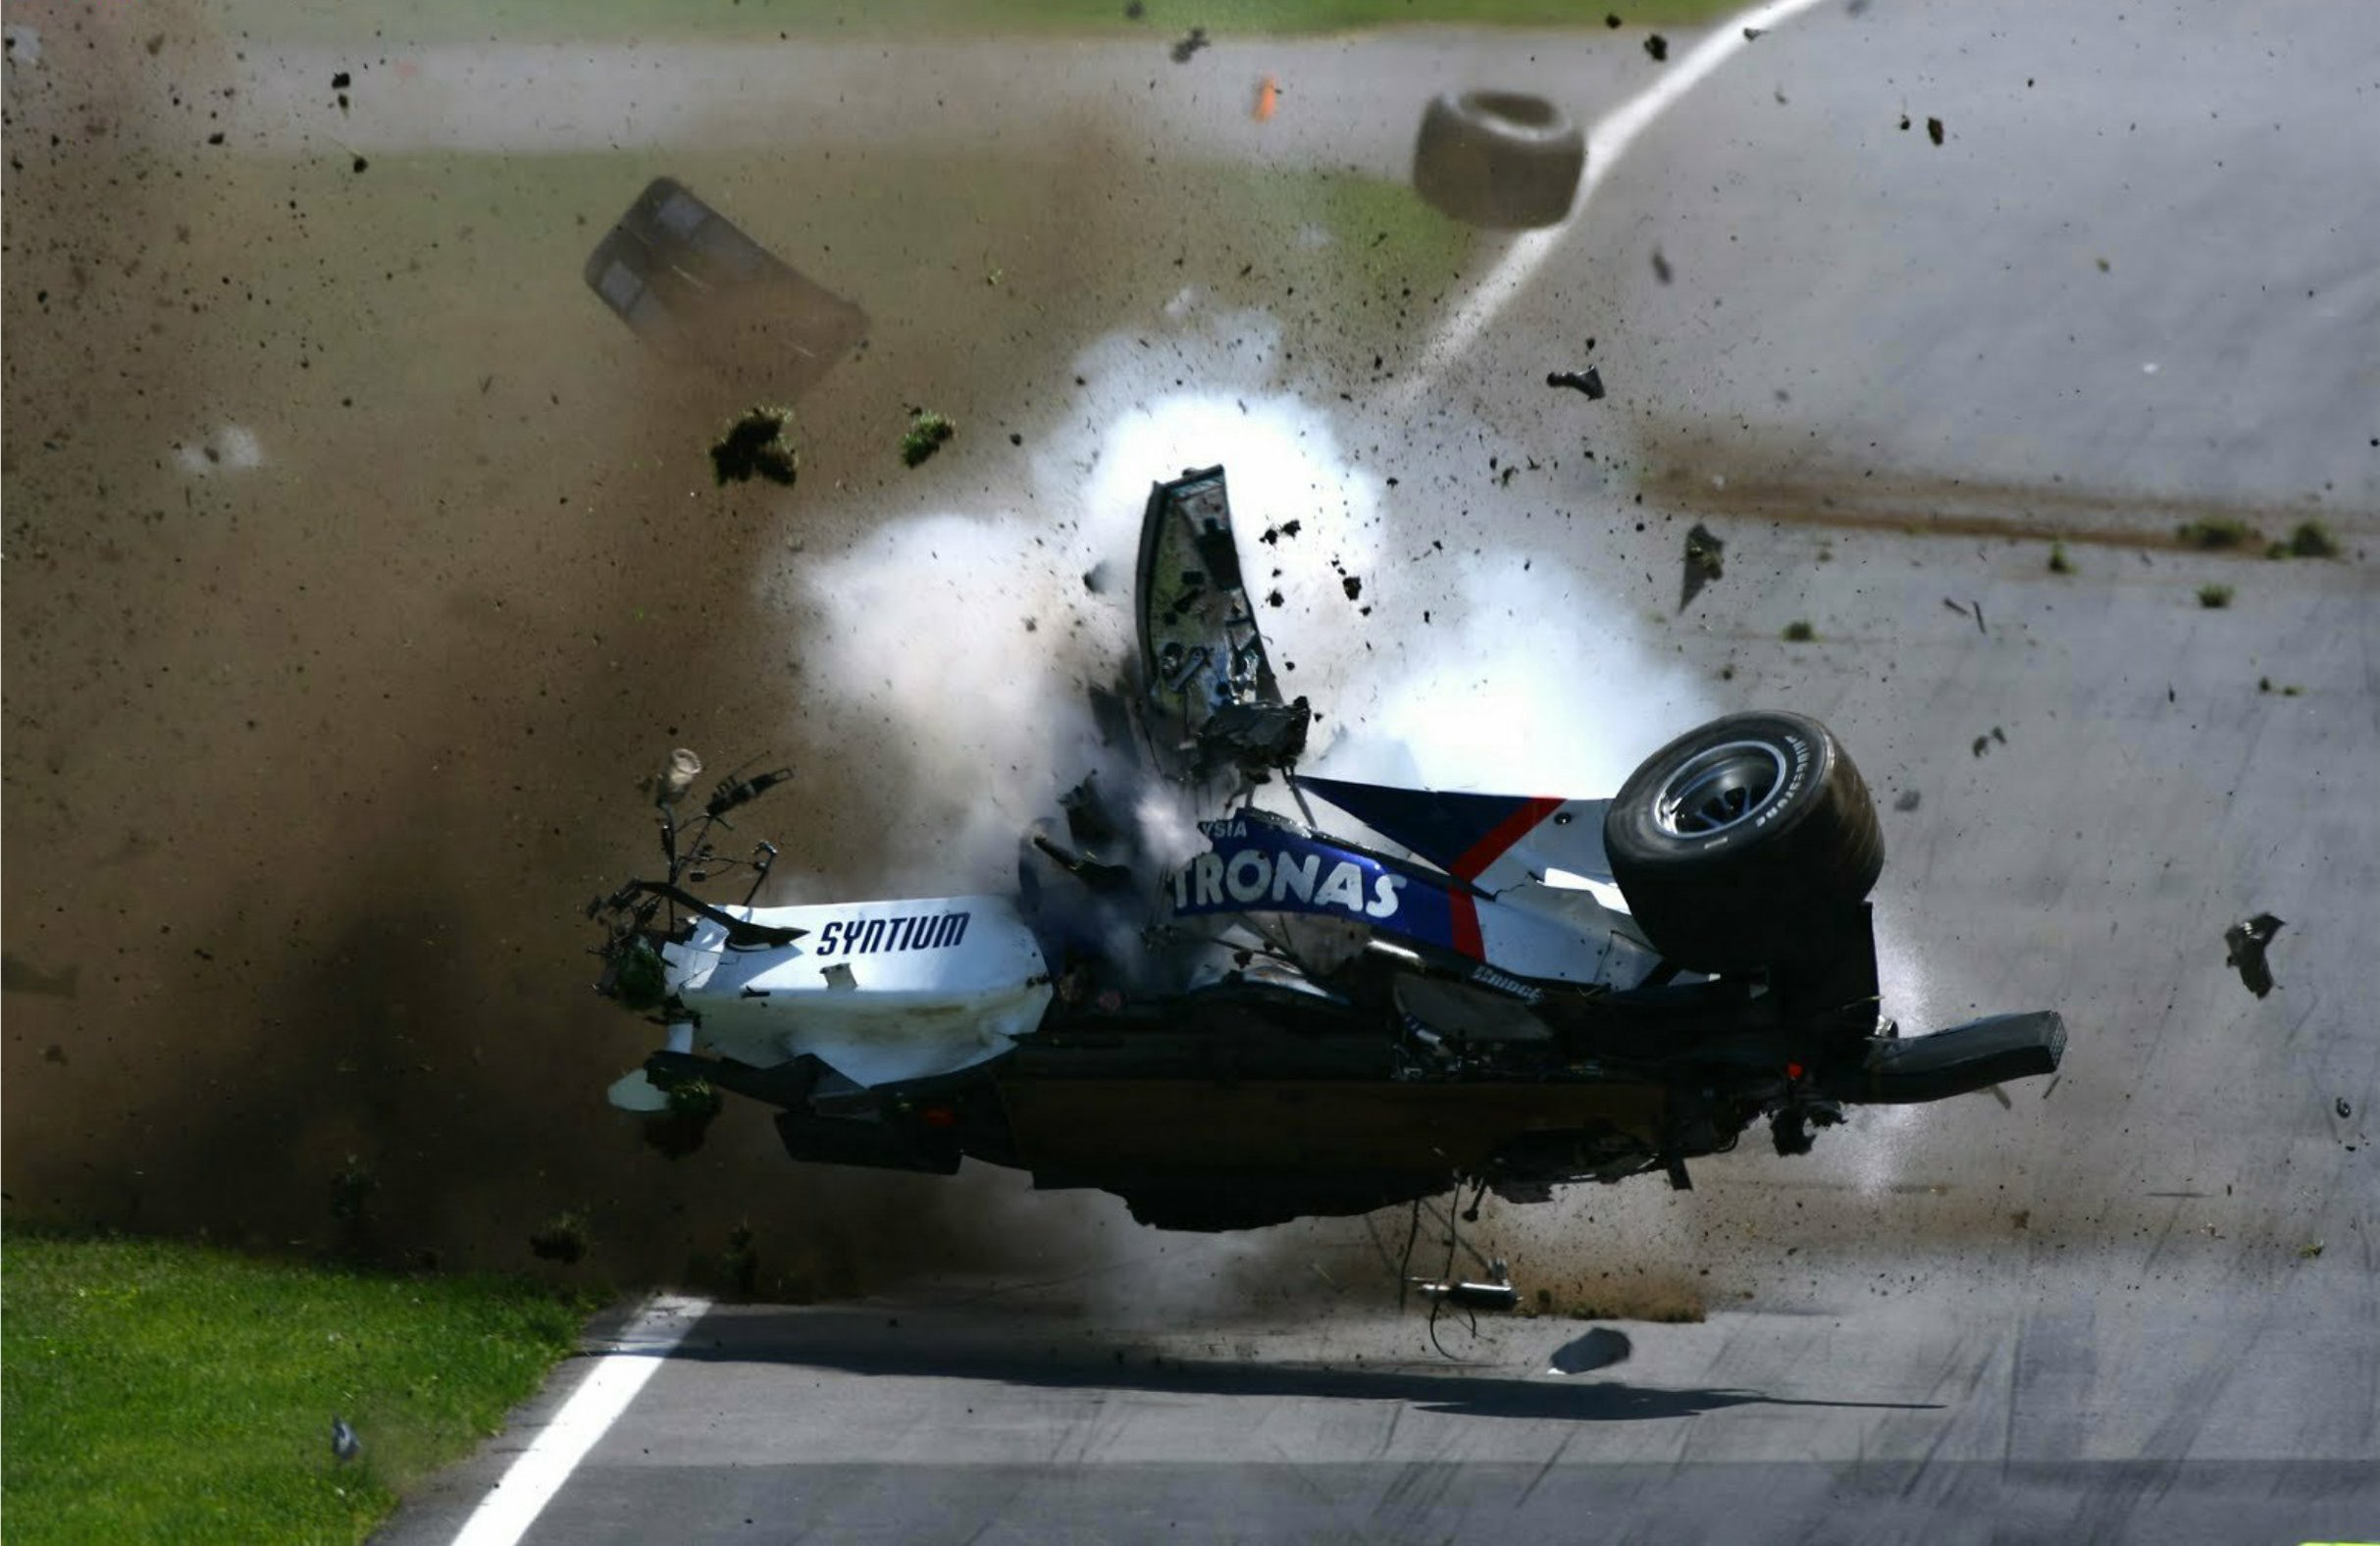 F1 Car crash wallpaper   ForWallpapercom 2426x1576